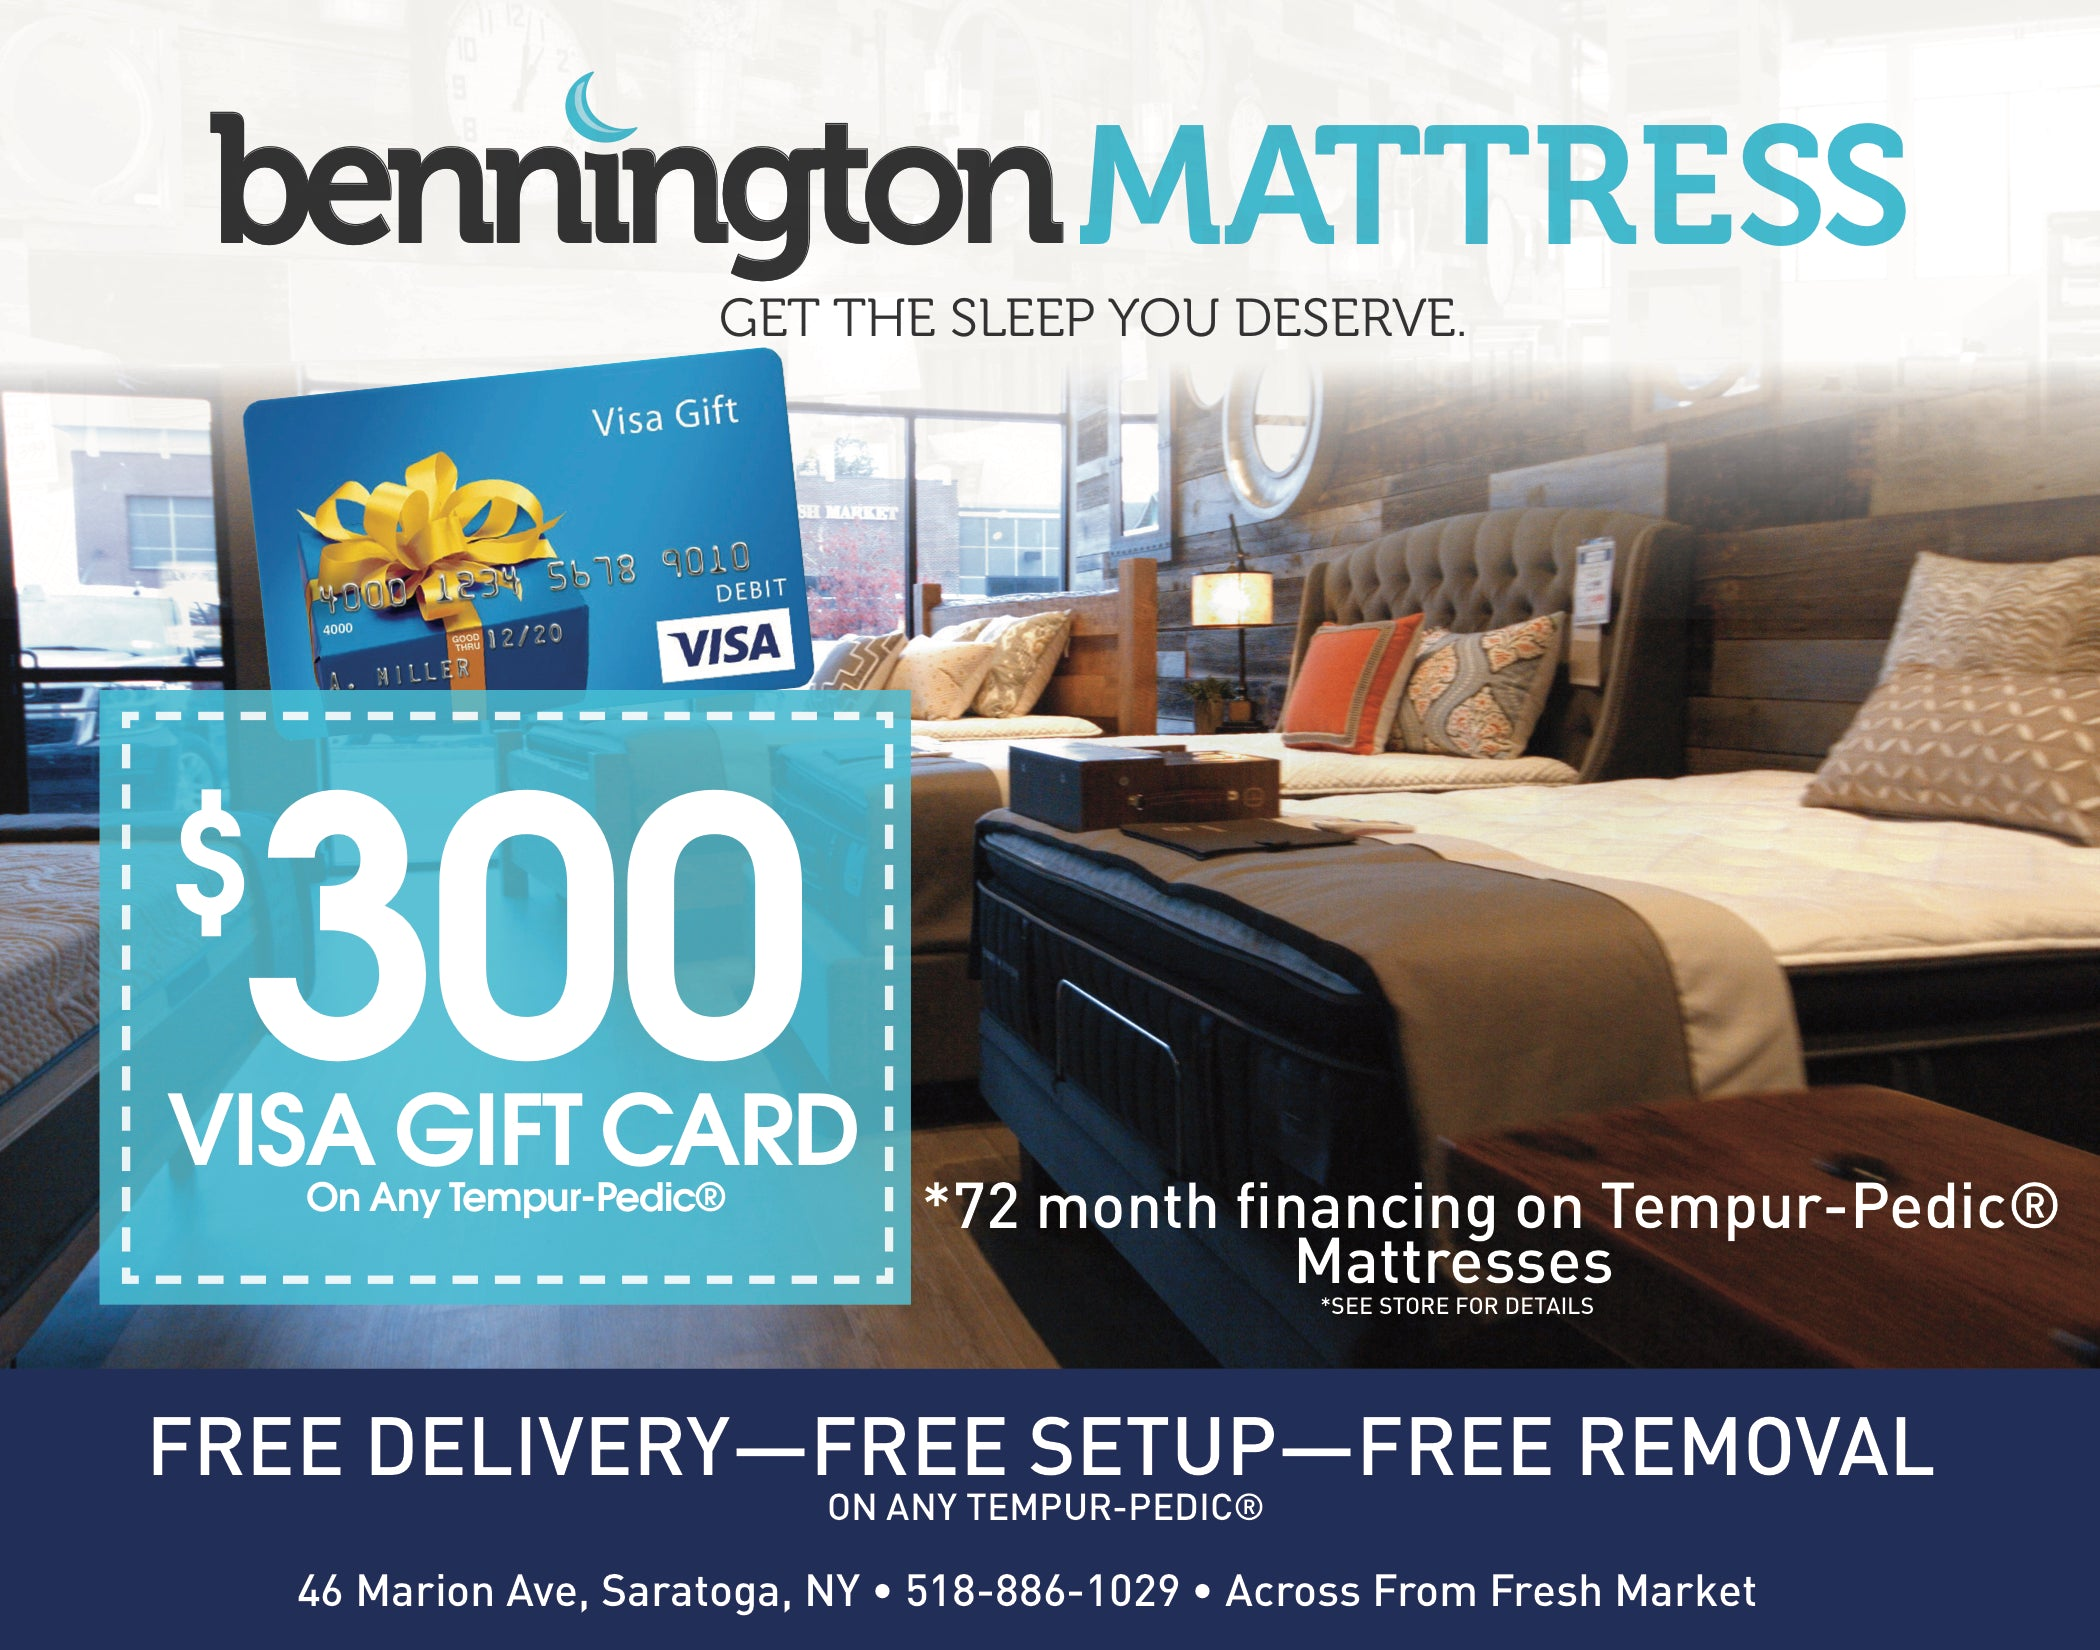 mattress consultation one to receive by free experts off on clinic ellipse removal status iamelitebeauty your twitter elite get laser patch beauty all our a test and massive